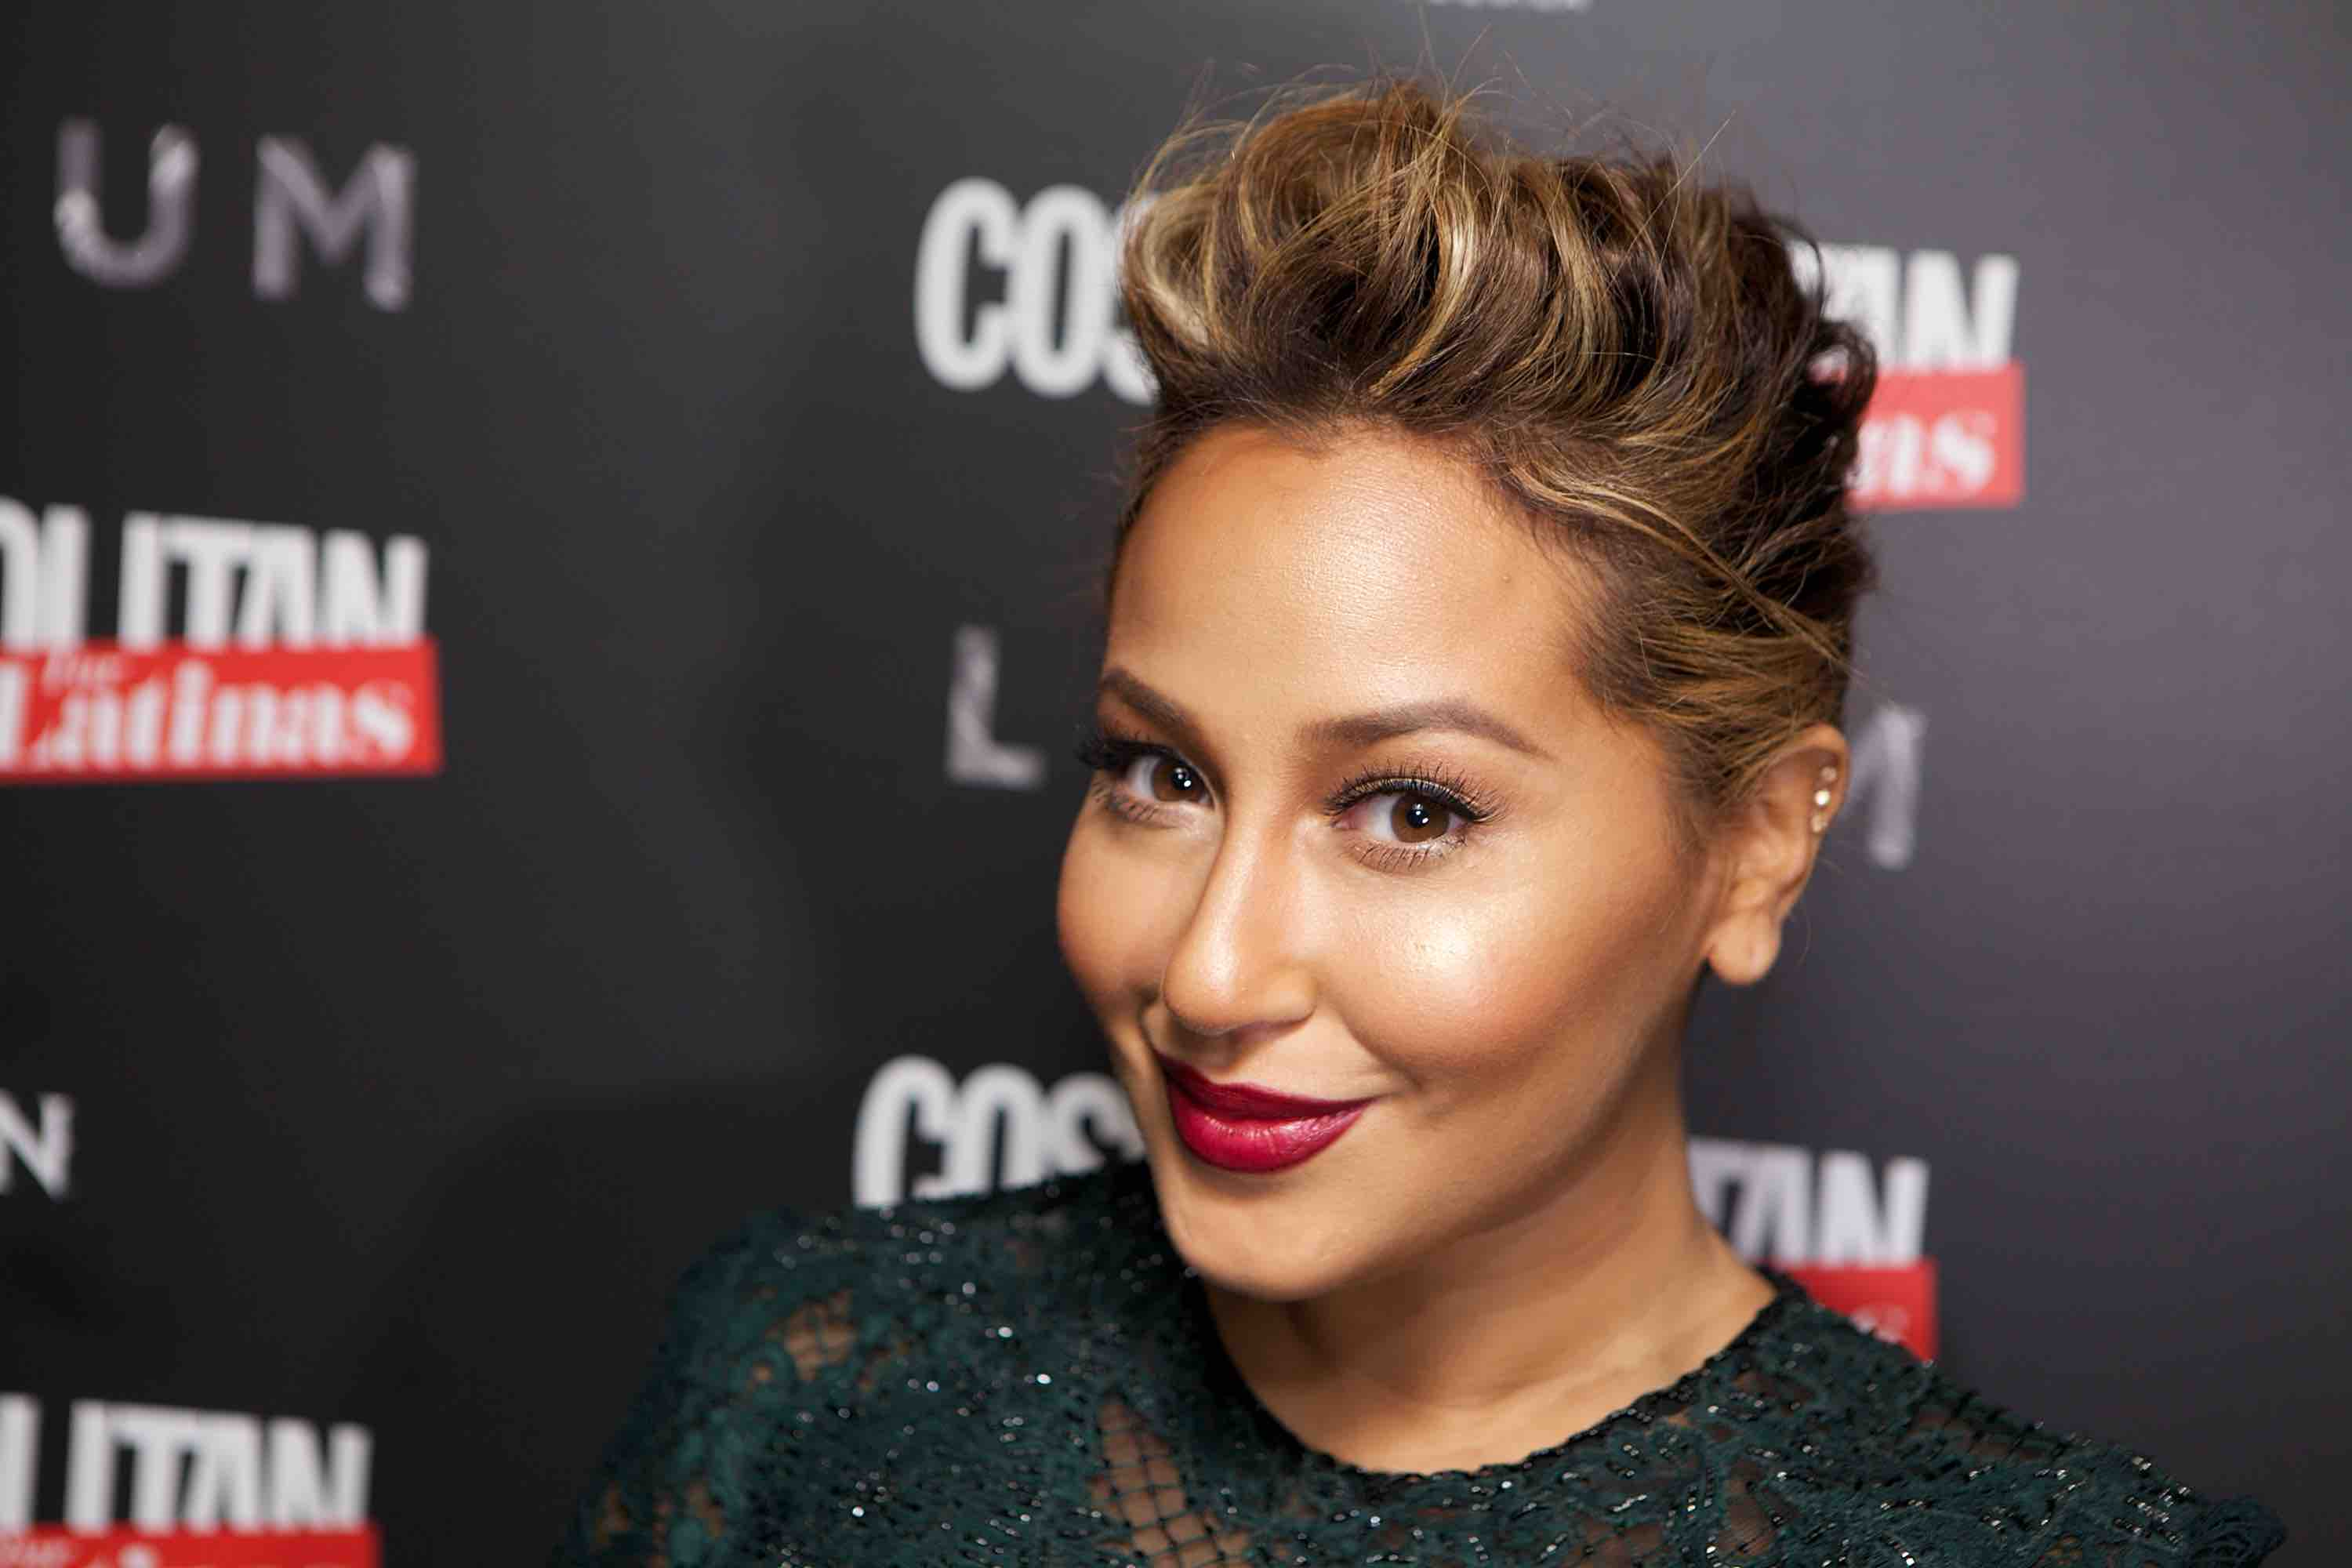 Everyone Is Convinced That Adrienne Bailon Is on the New Season of 'The Masked Singer'